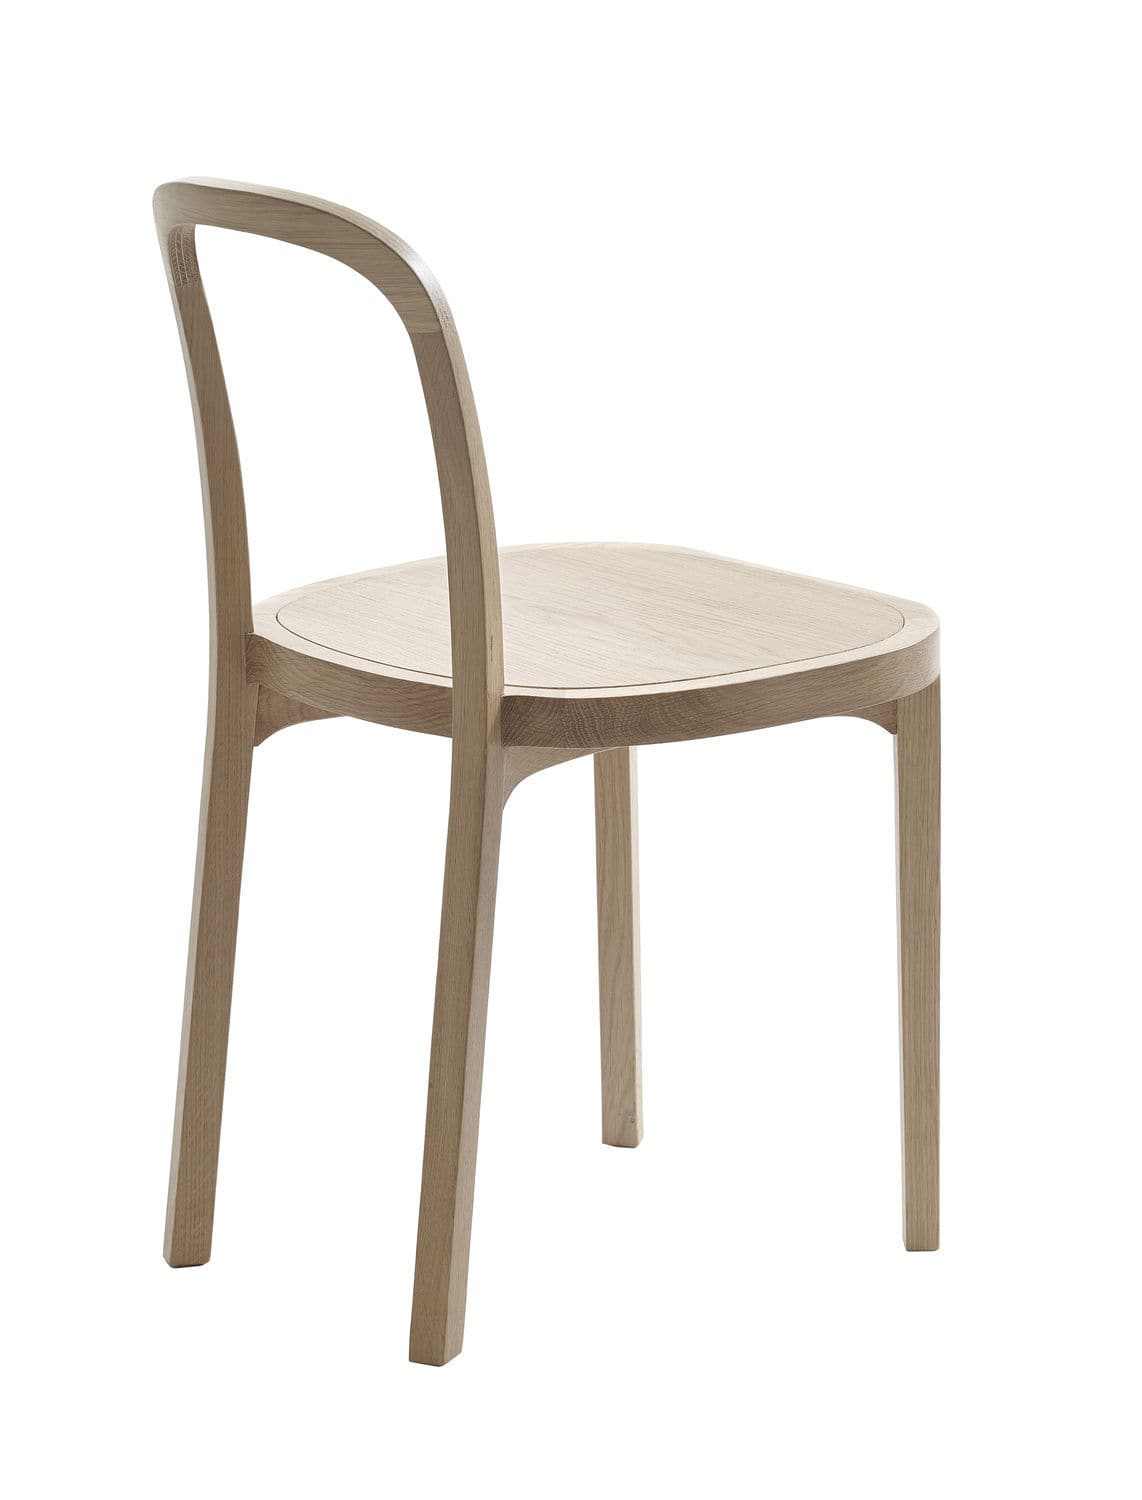 Contemporary Dining Chair Upholstered Oak Fabric SIRO By - Contemporary wooden dining chairs